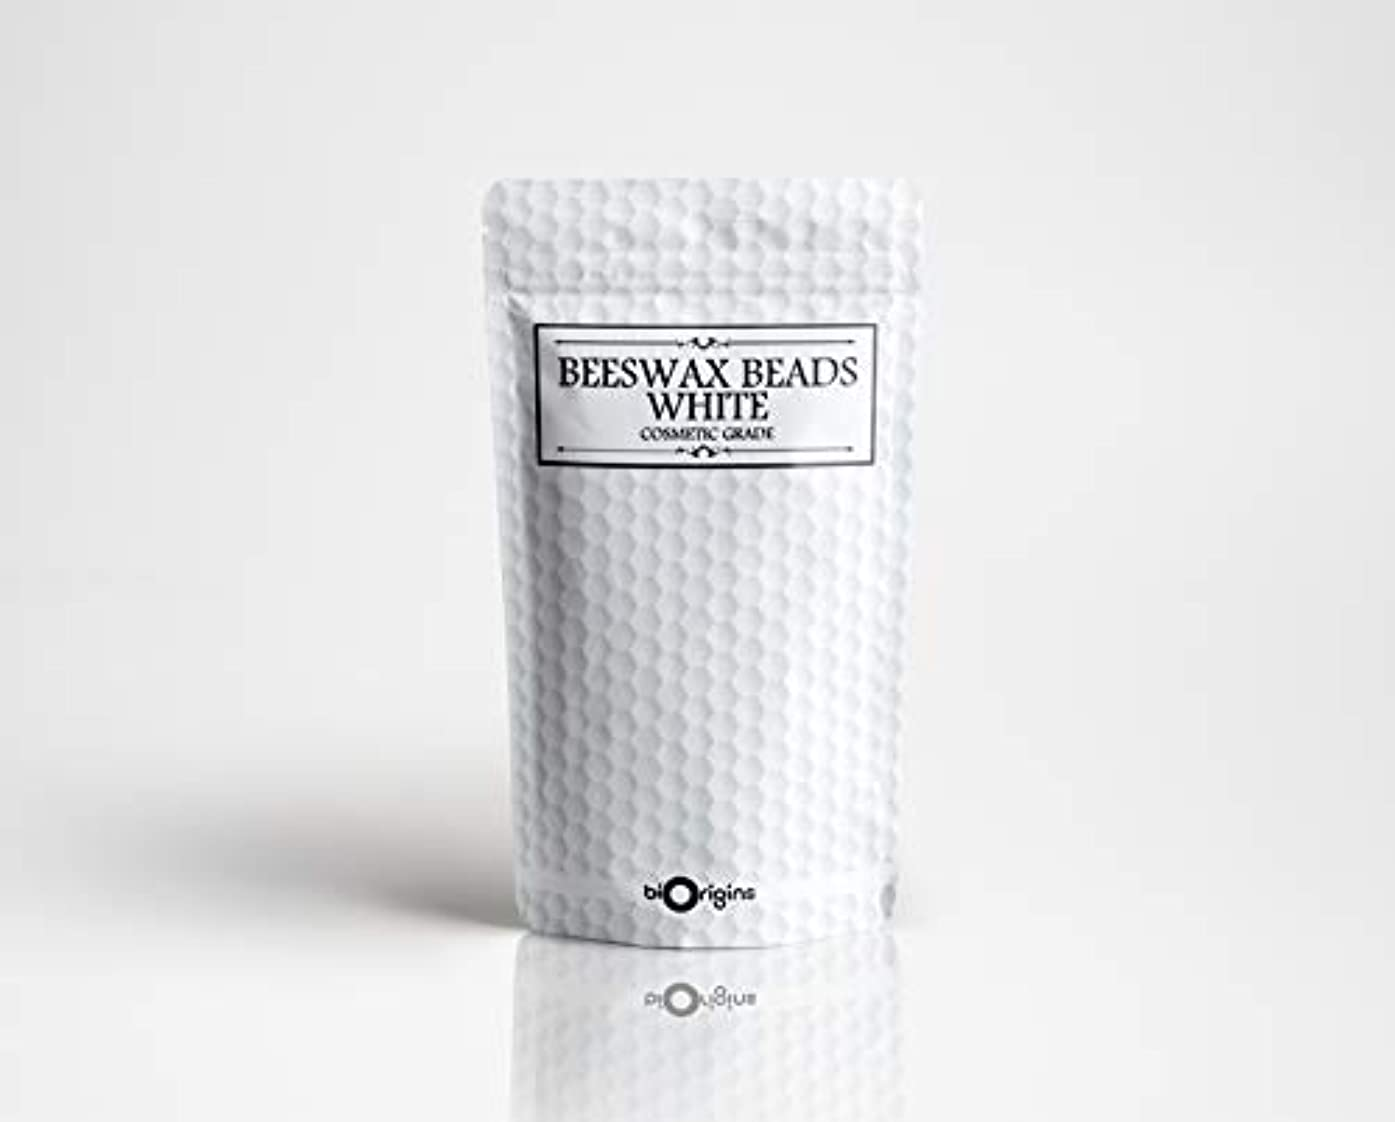 Beeswax Beads White - Cosmetic Grade - 100g